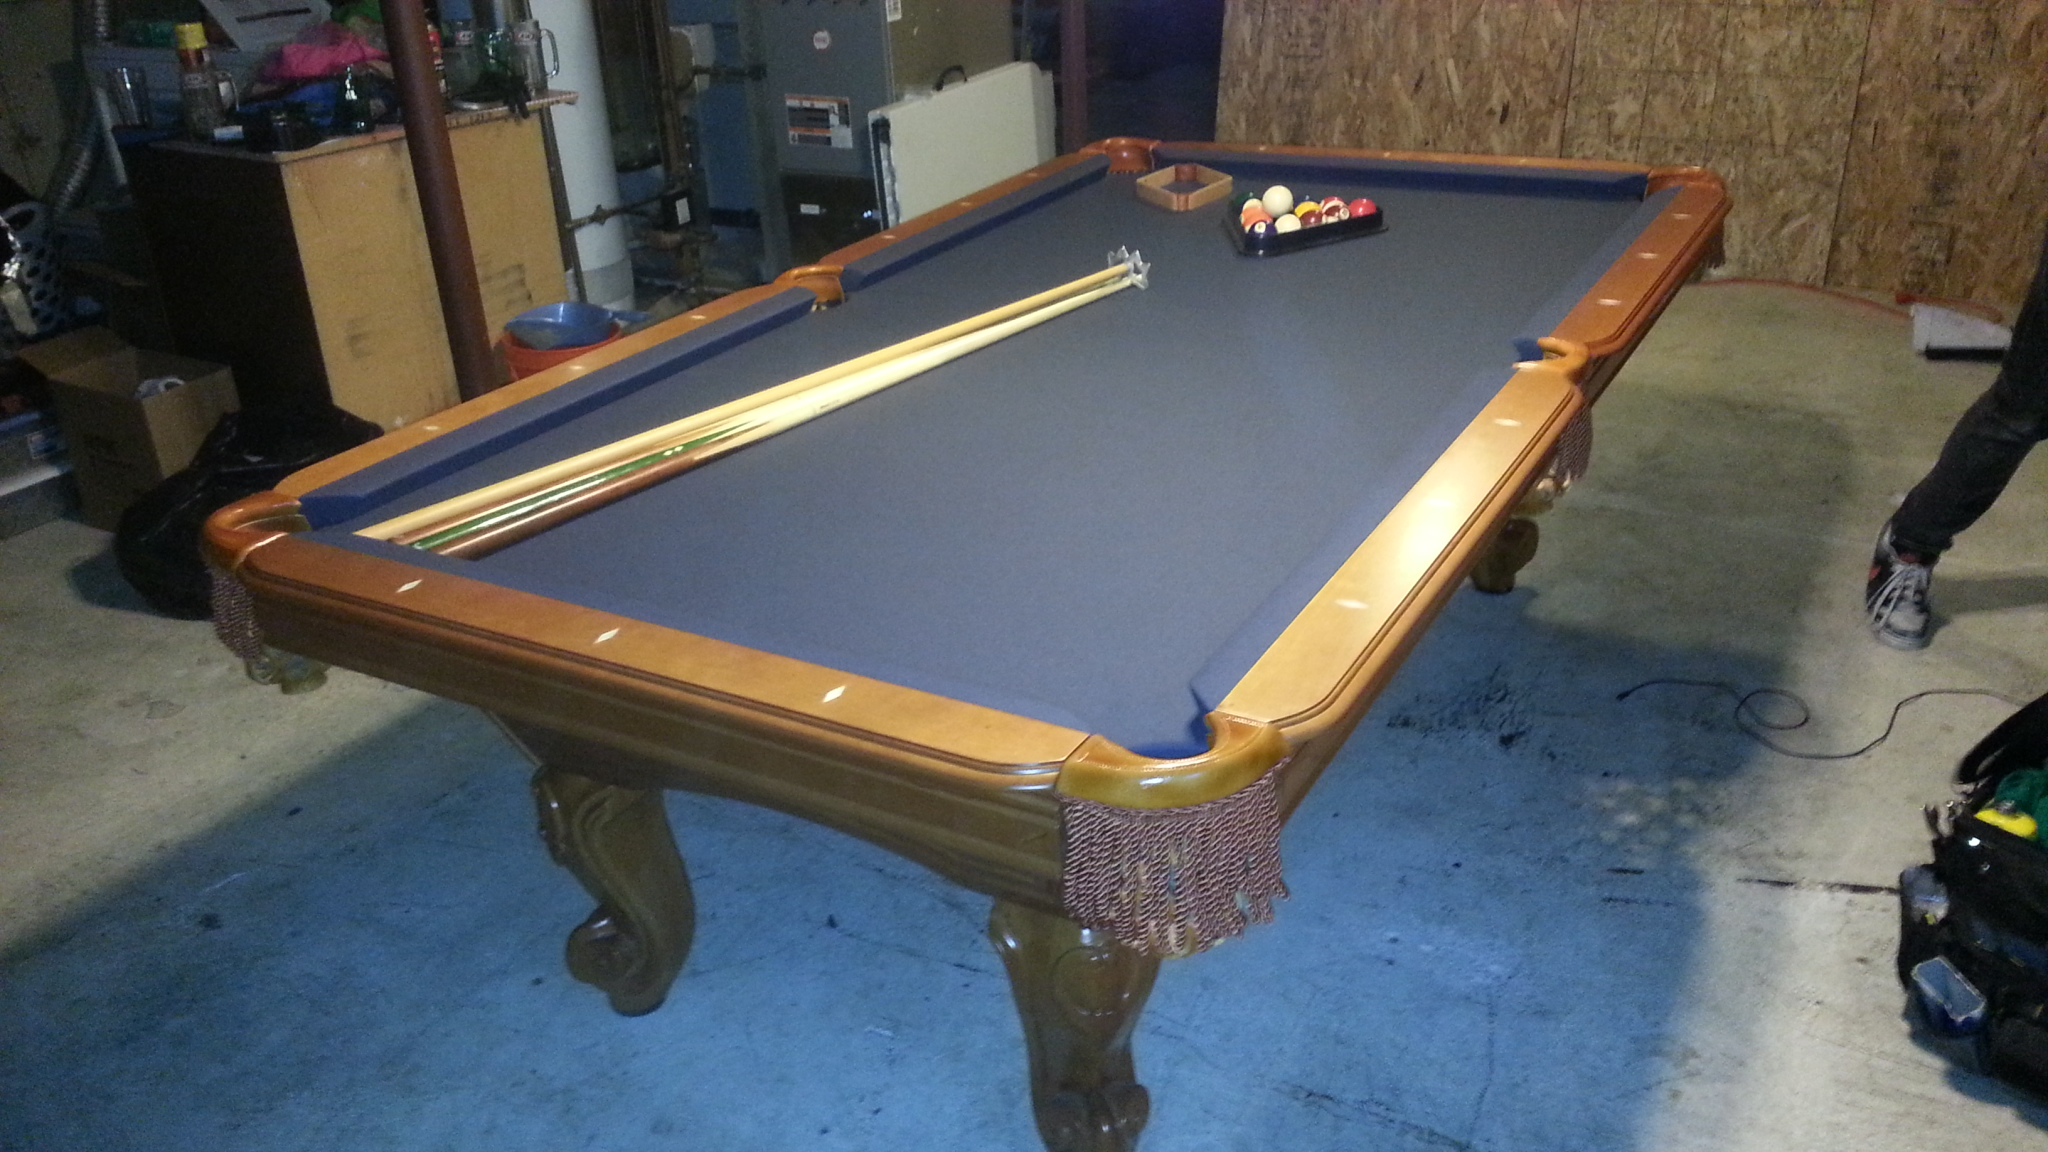 en championship ii table ft hathaway black in p saturn cloth felt home billiard pool